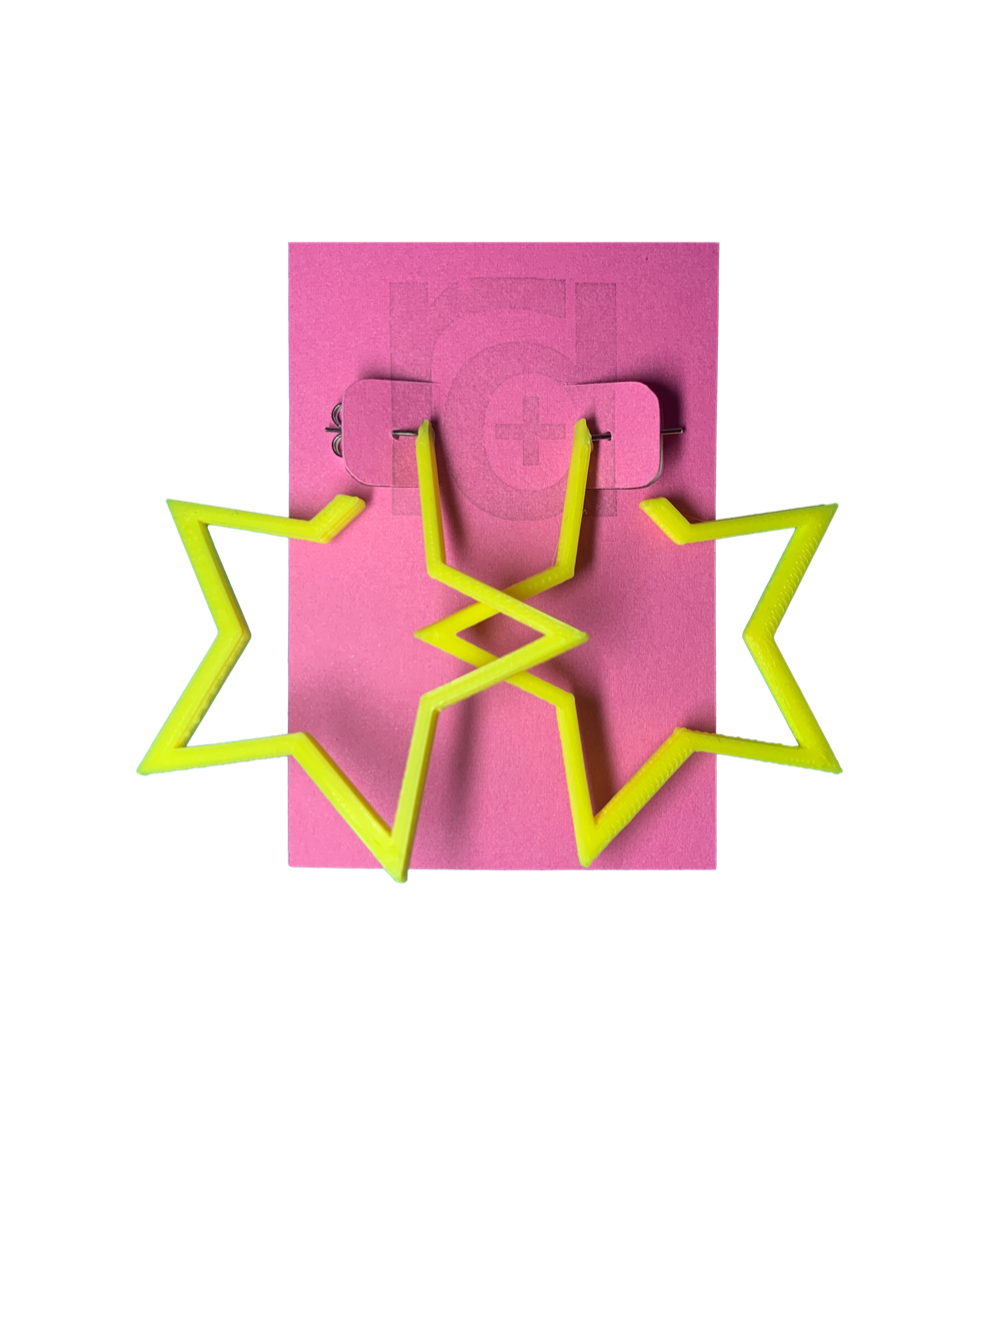 On a bright pink card are two R+D earrings. The earrings are yellow star hoops that are 3D printed with a plant based filament.